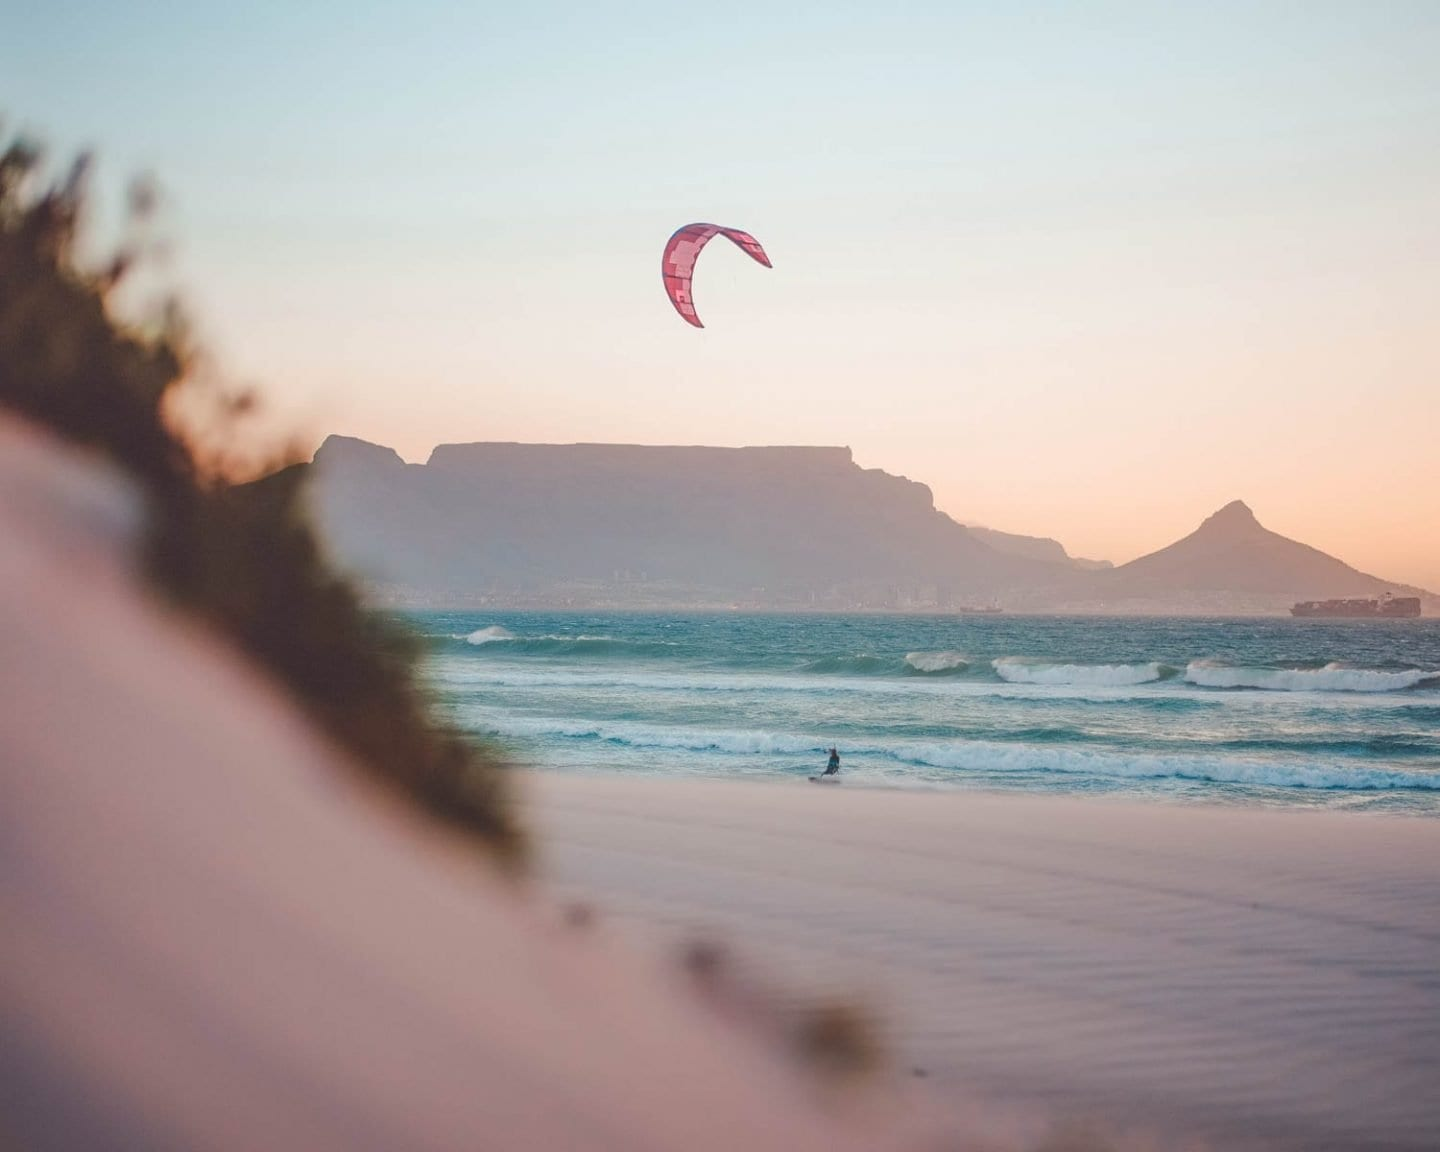 kite surfing in cape town